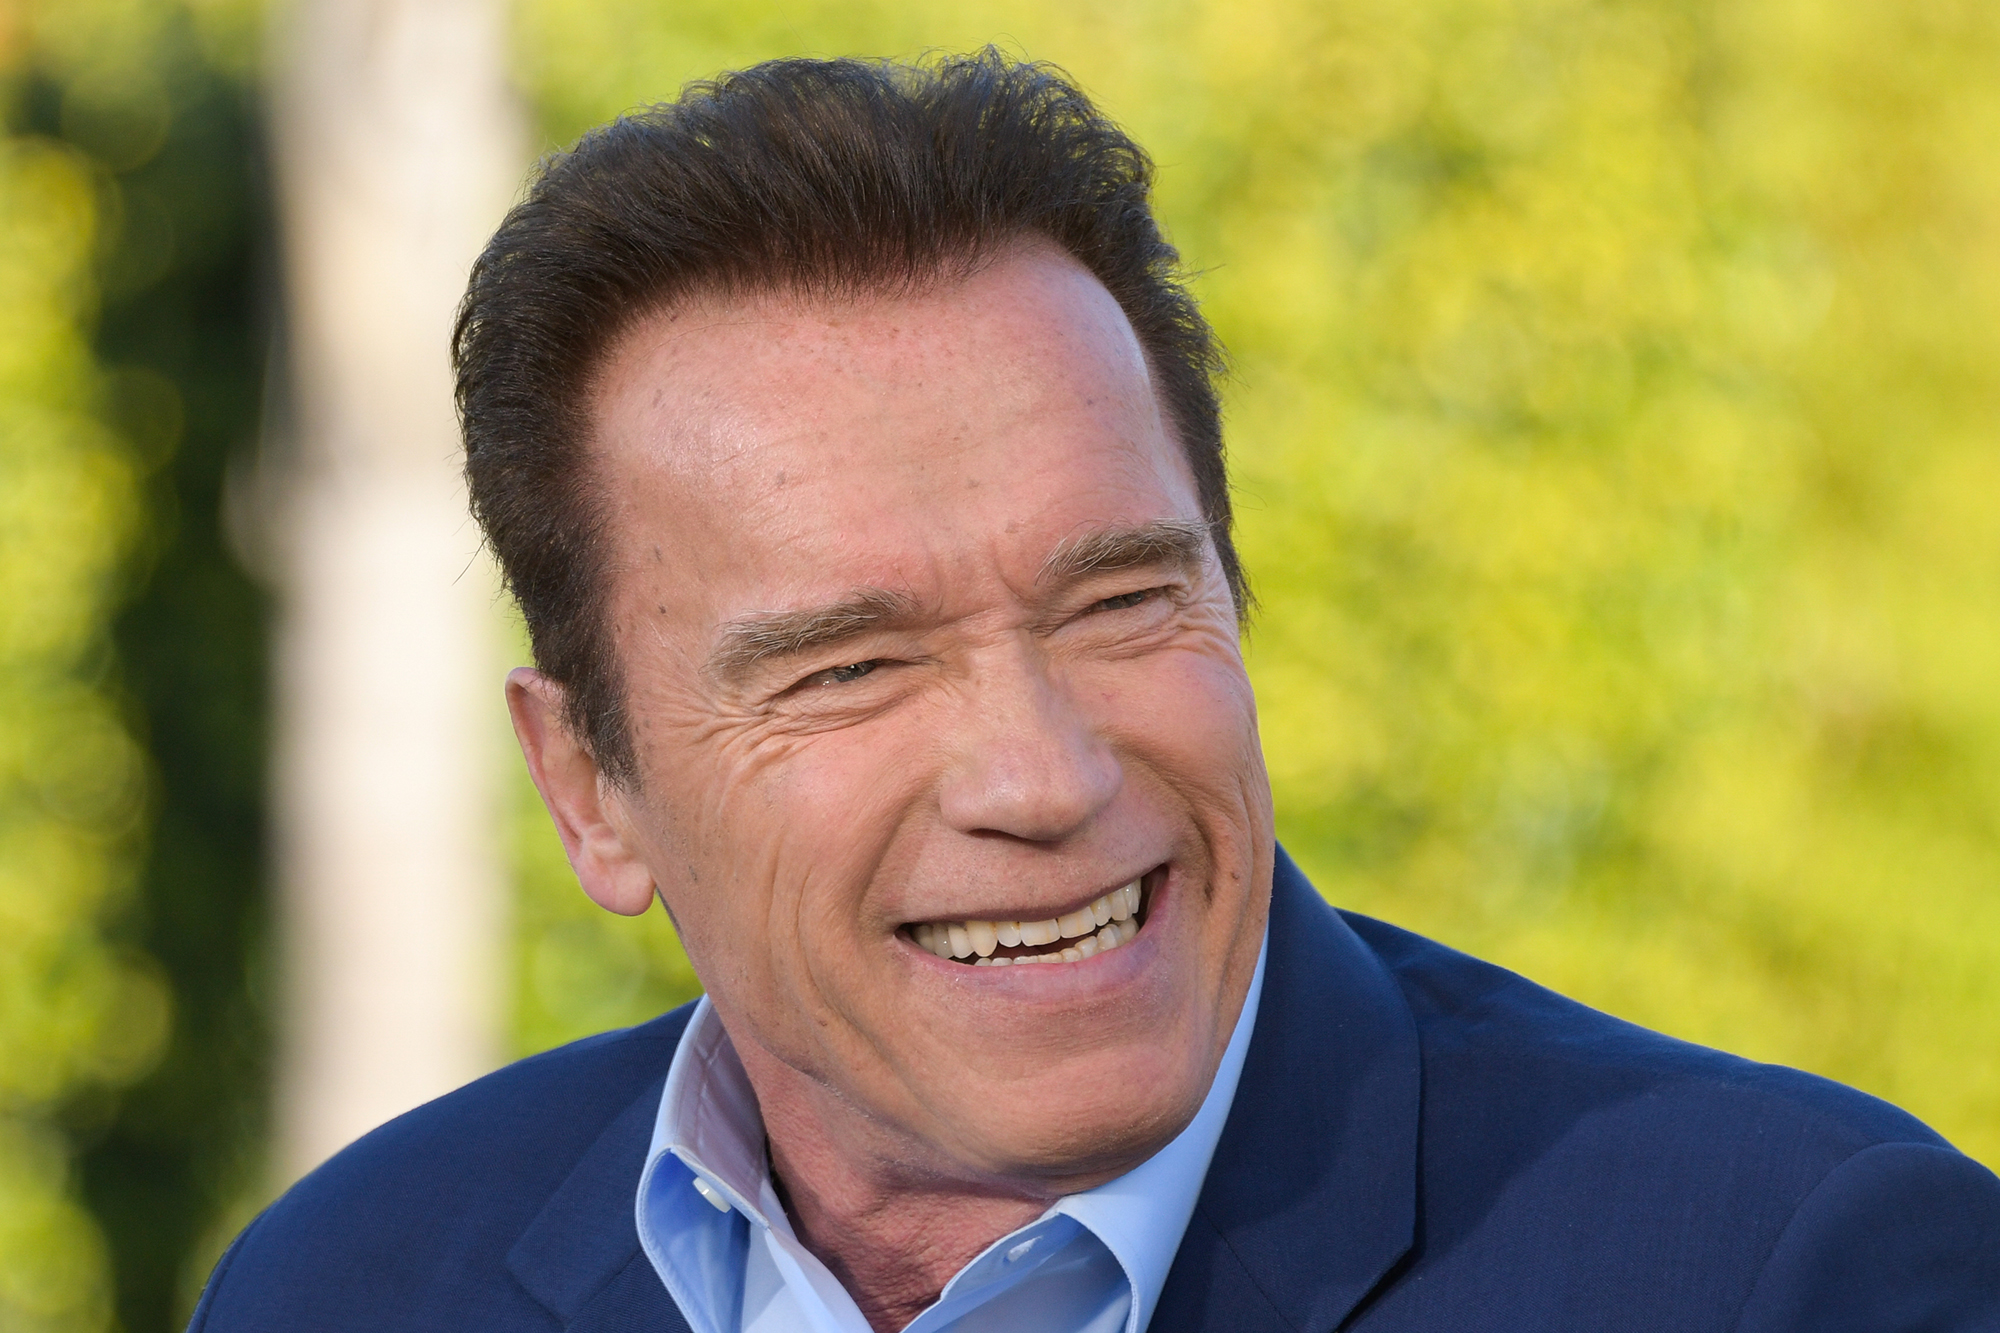 Arnold Schwarzenegger at University of Houston Commencement: 'None of Us Can Make It Alone'